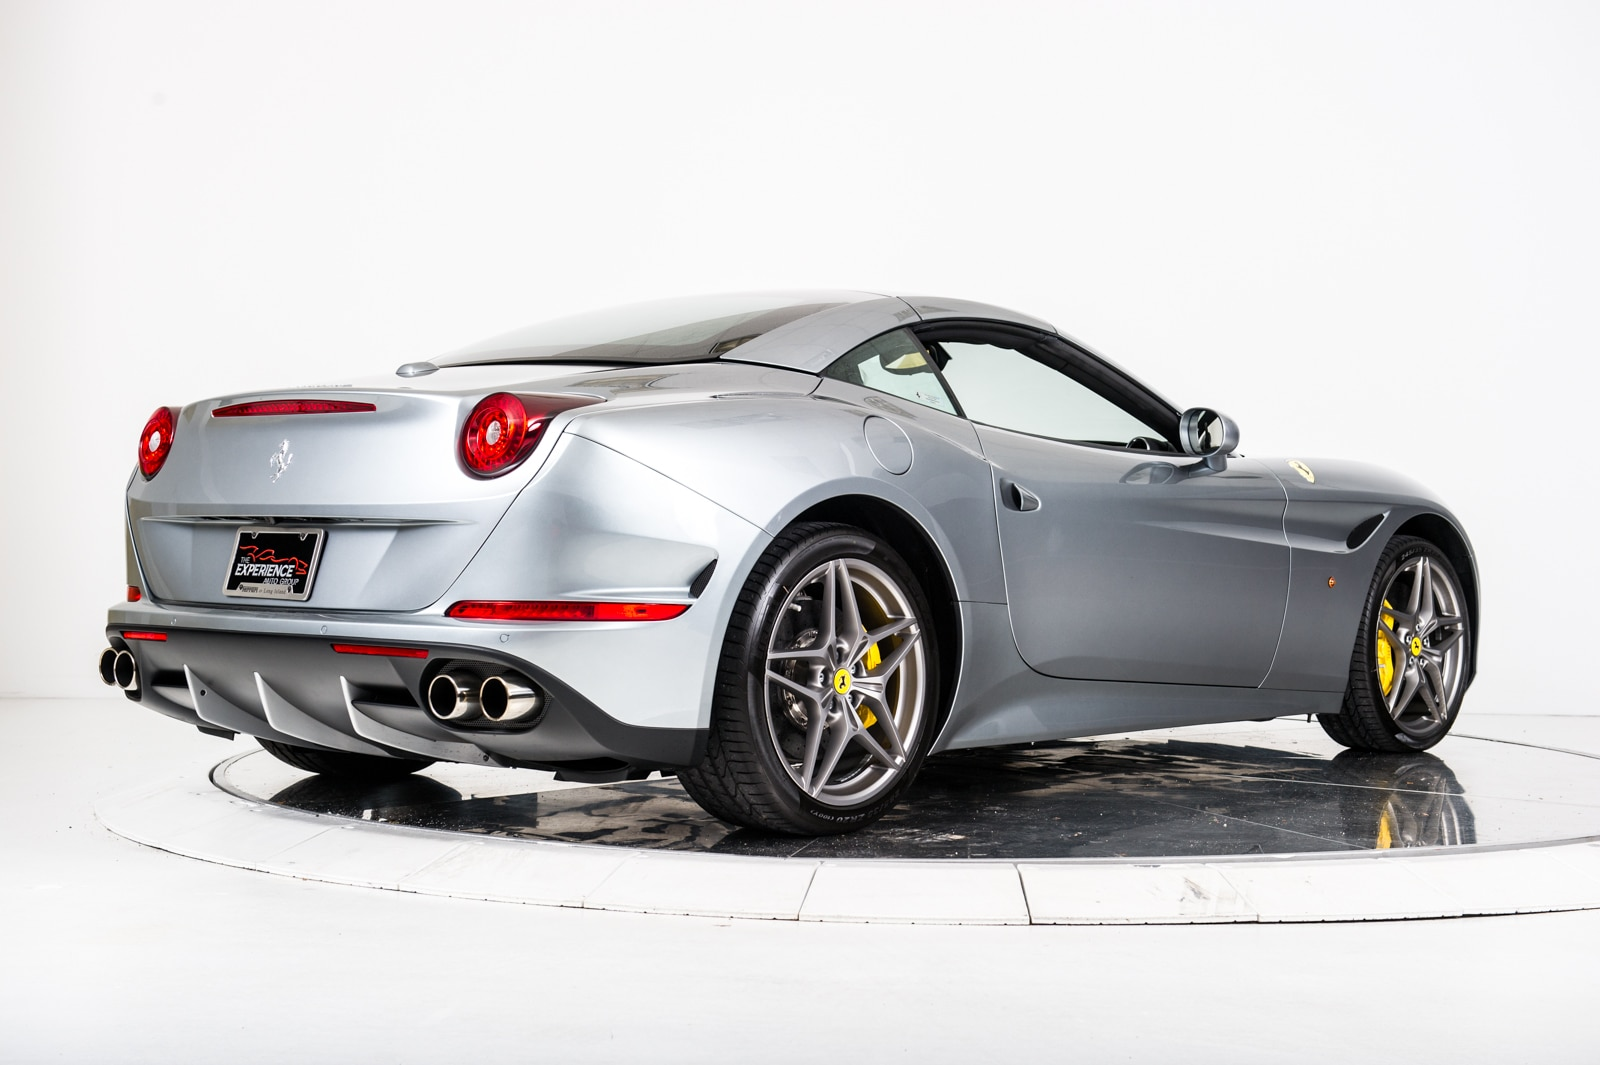 used 2015 ferrari california t for sale plainview near long island ny vi. Cars Review. Best American Auto & Cars Review